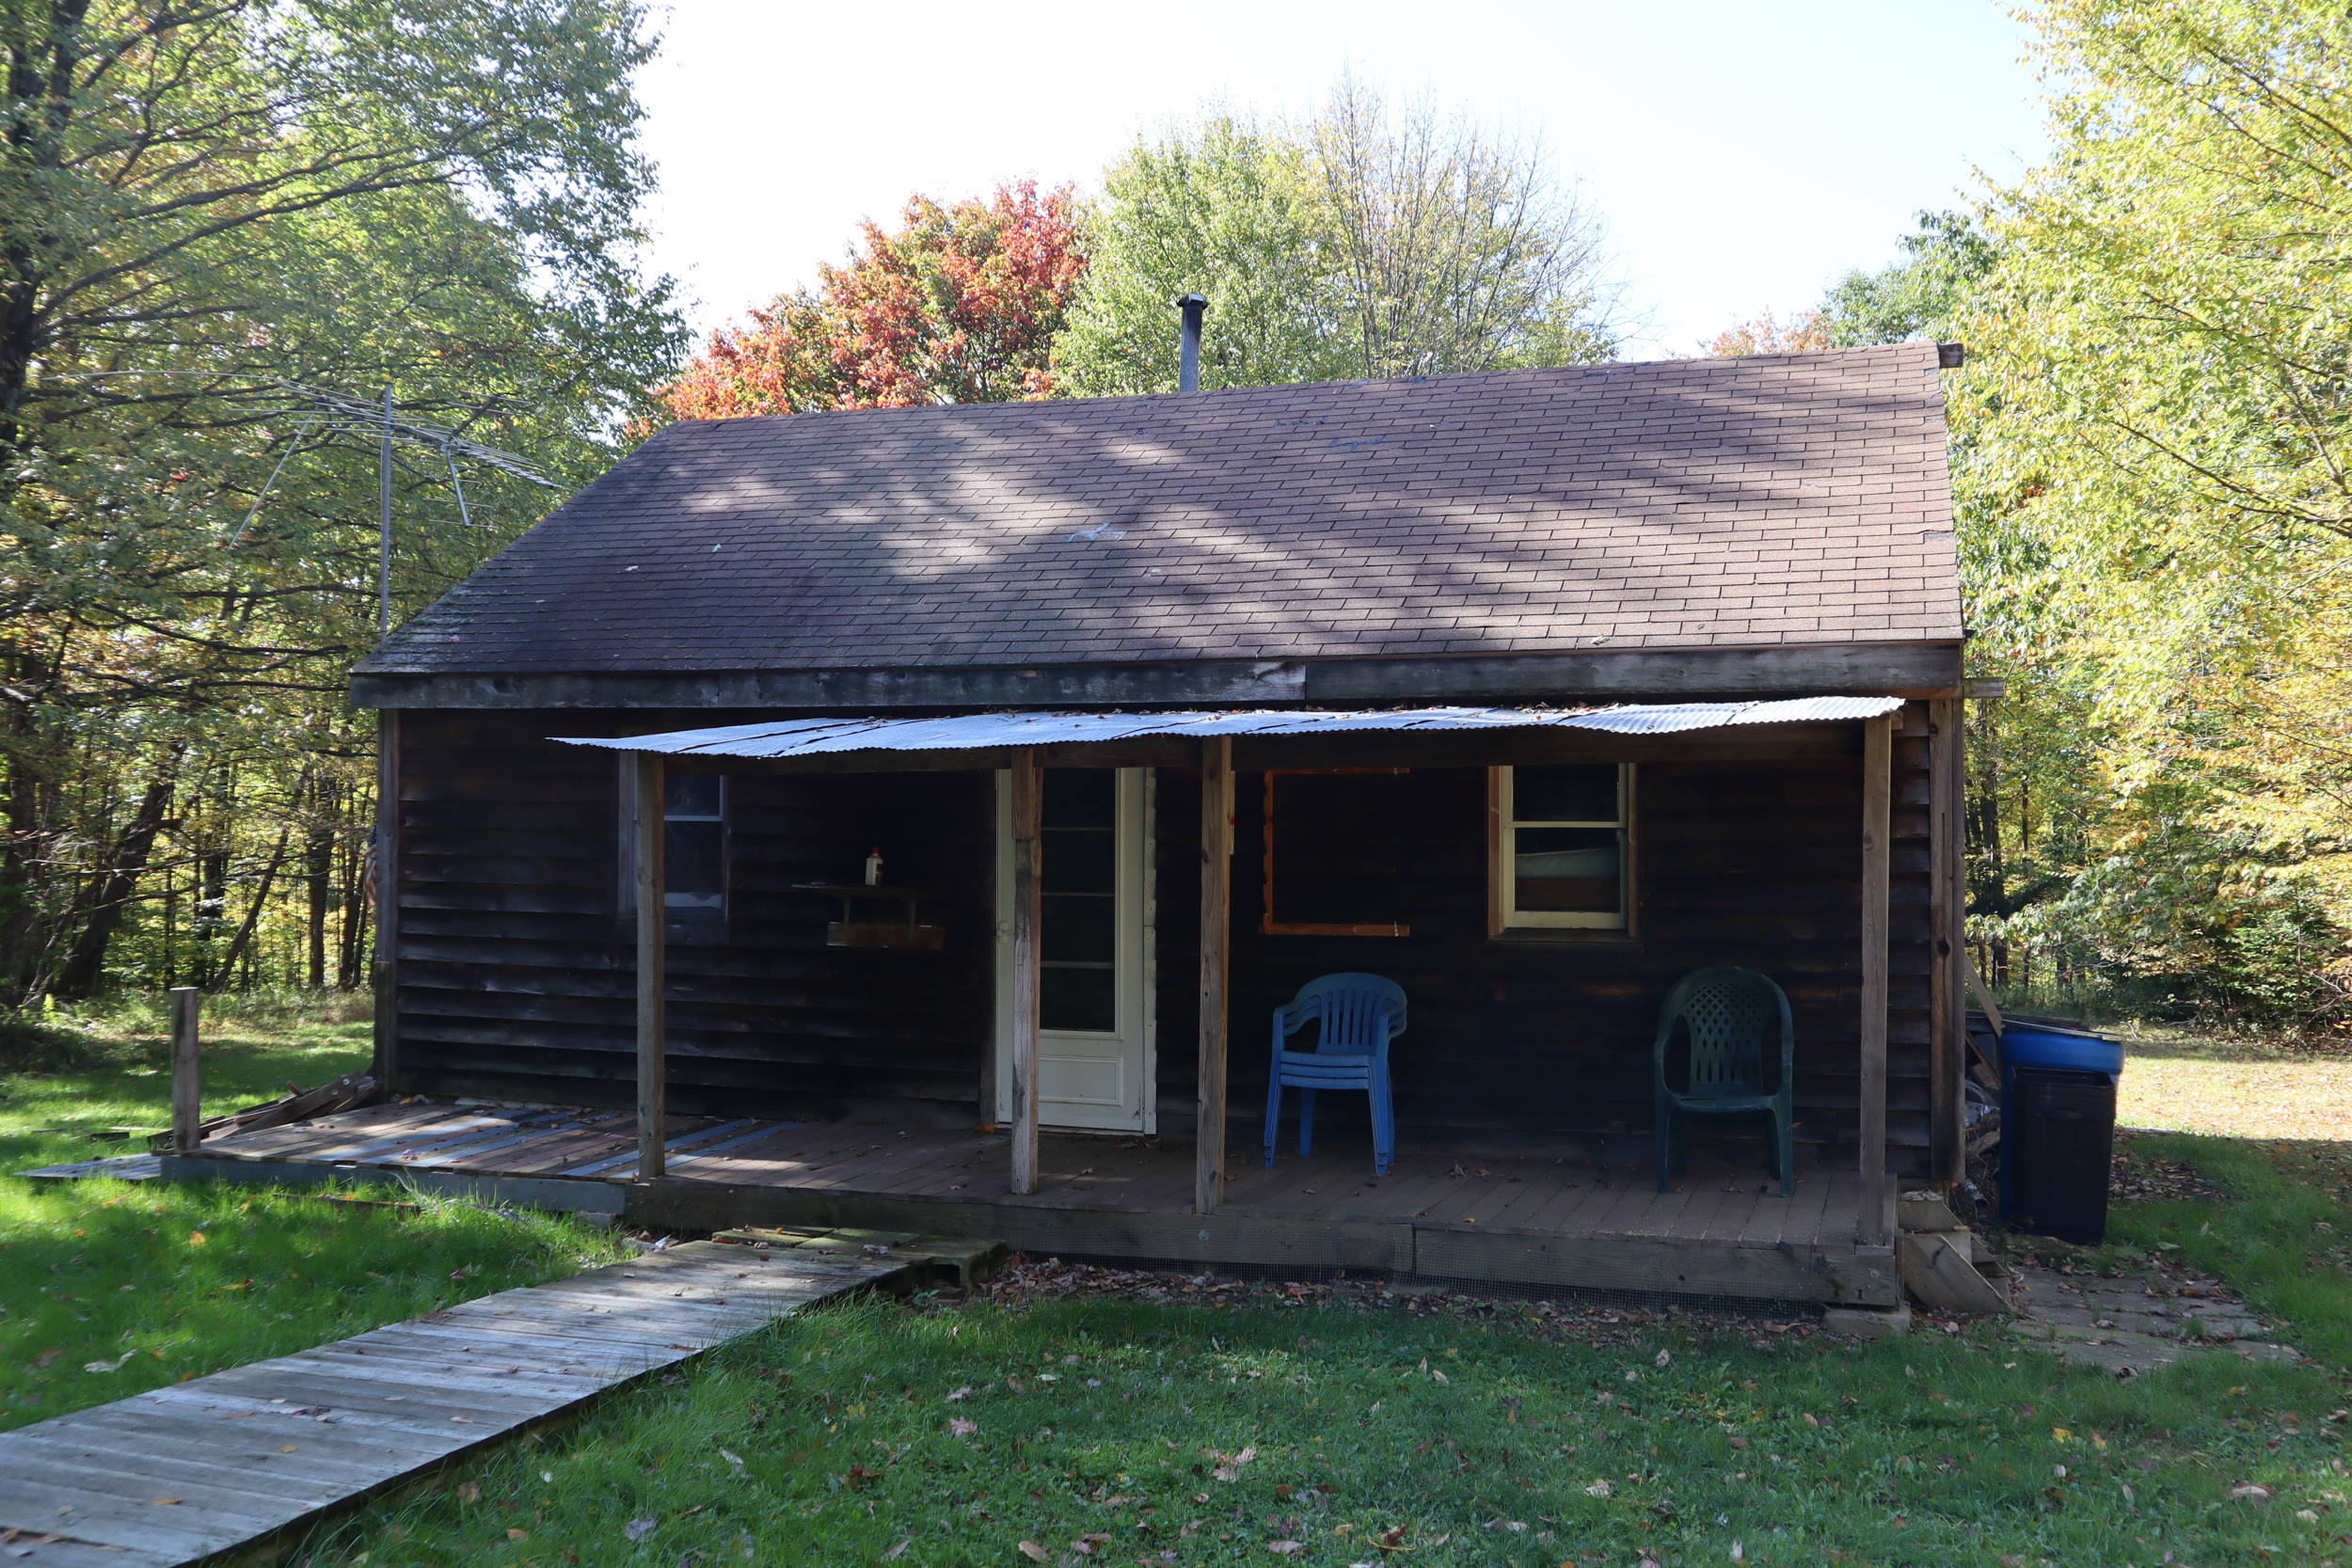 Tract 2 cabin 1 IMG 0087